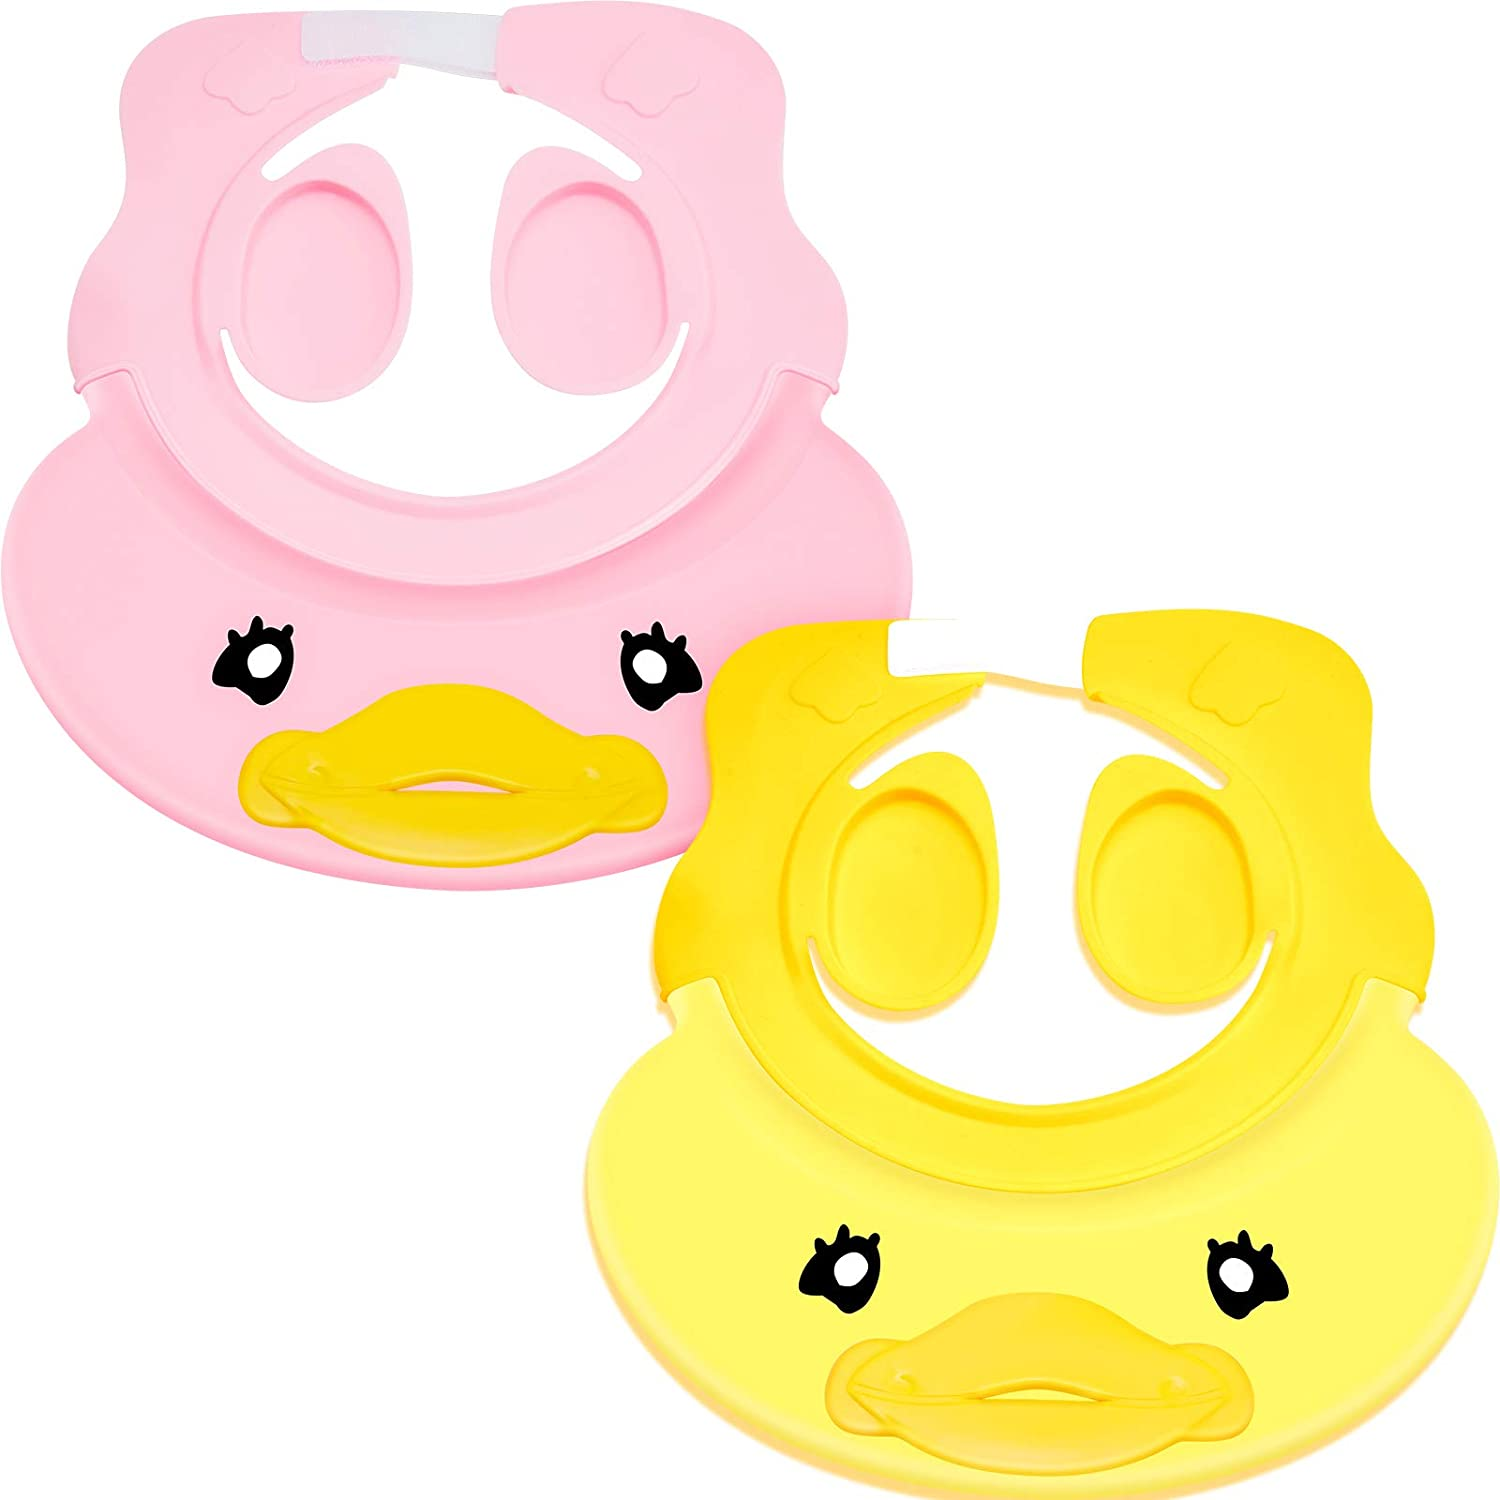 2 Pieces Adjustable Baby Shower Cap Visor Silicone Baby Bathing Hat Waterproof Shampoo Cap for Children Toddler Girls Boys Protect Ears Eyes, Yellow and Pink